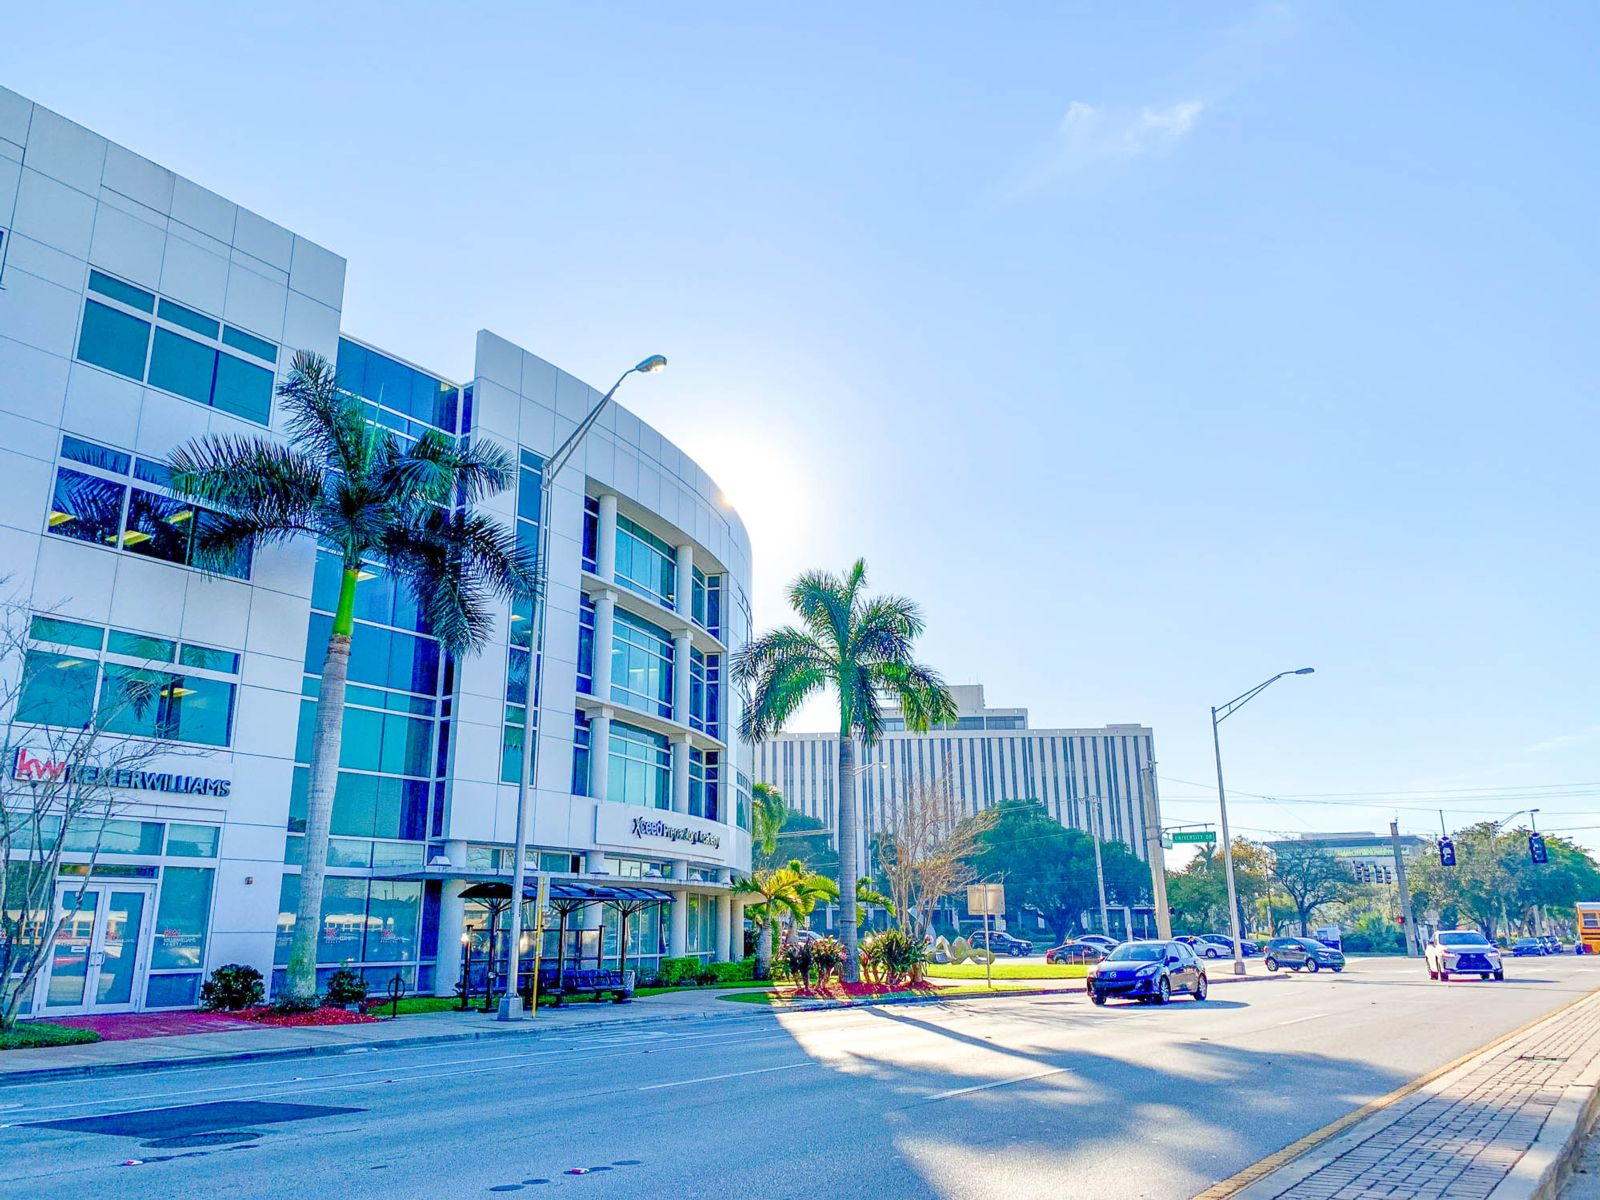 Coral Springs Criminal Defense Attorney for all Coral Springs criminal cases